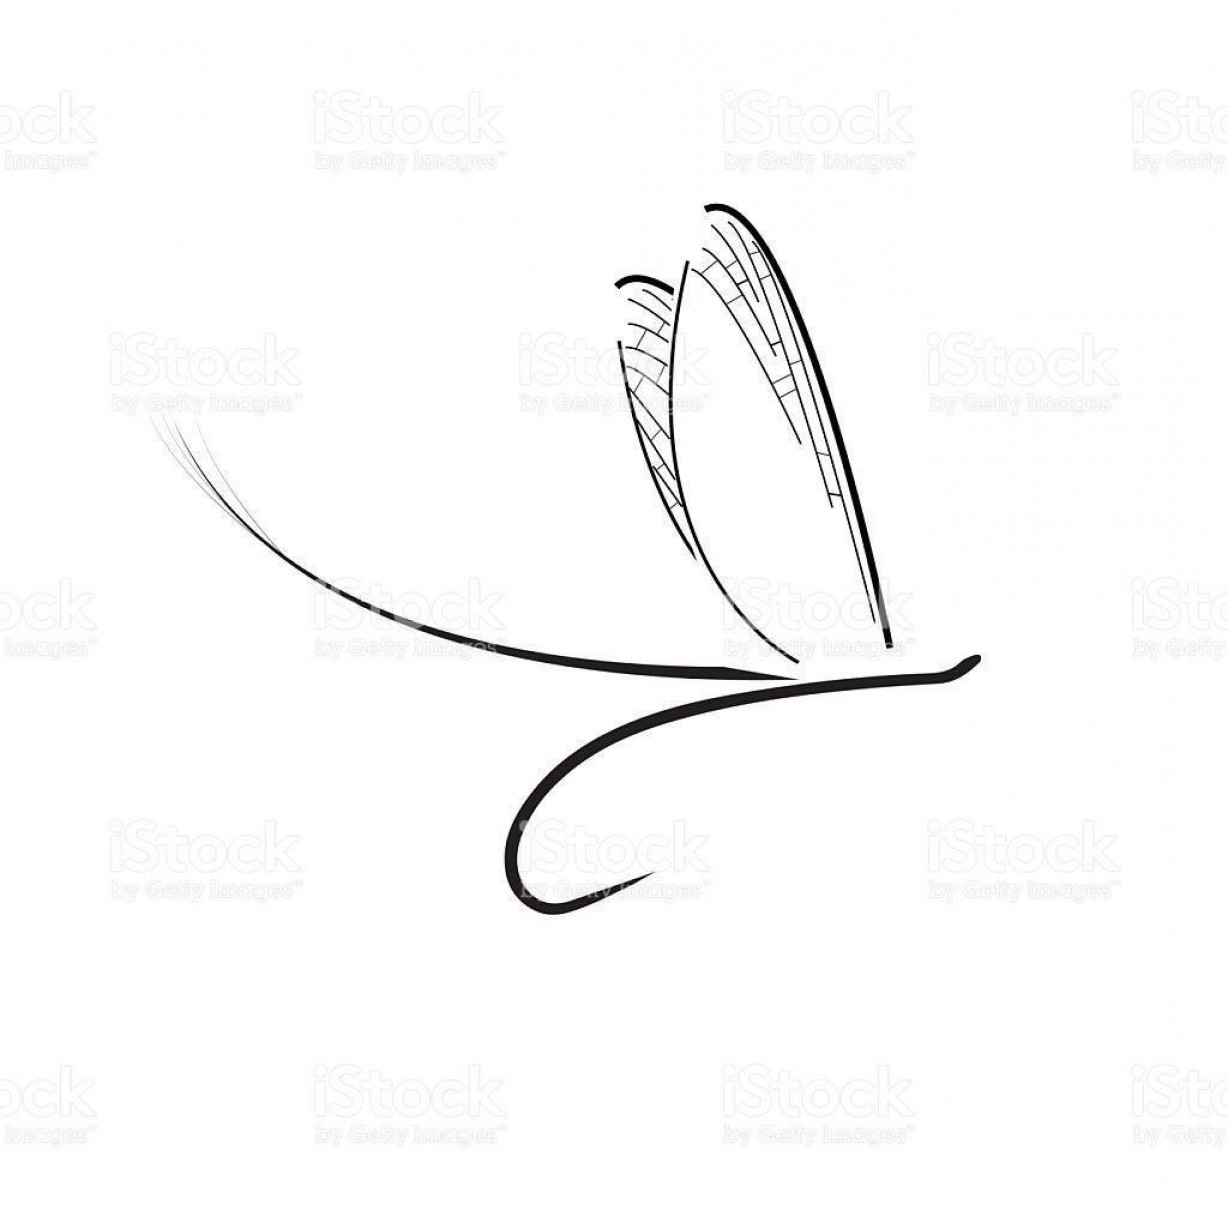 Detailed Vector Art Fly Fisherman: Best Hd Fly Fisherman Drawing Vector Design